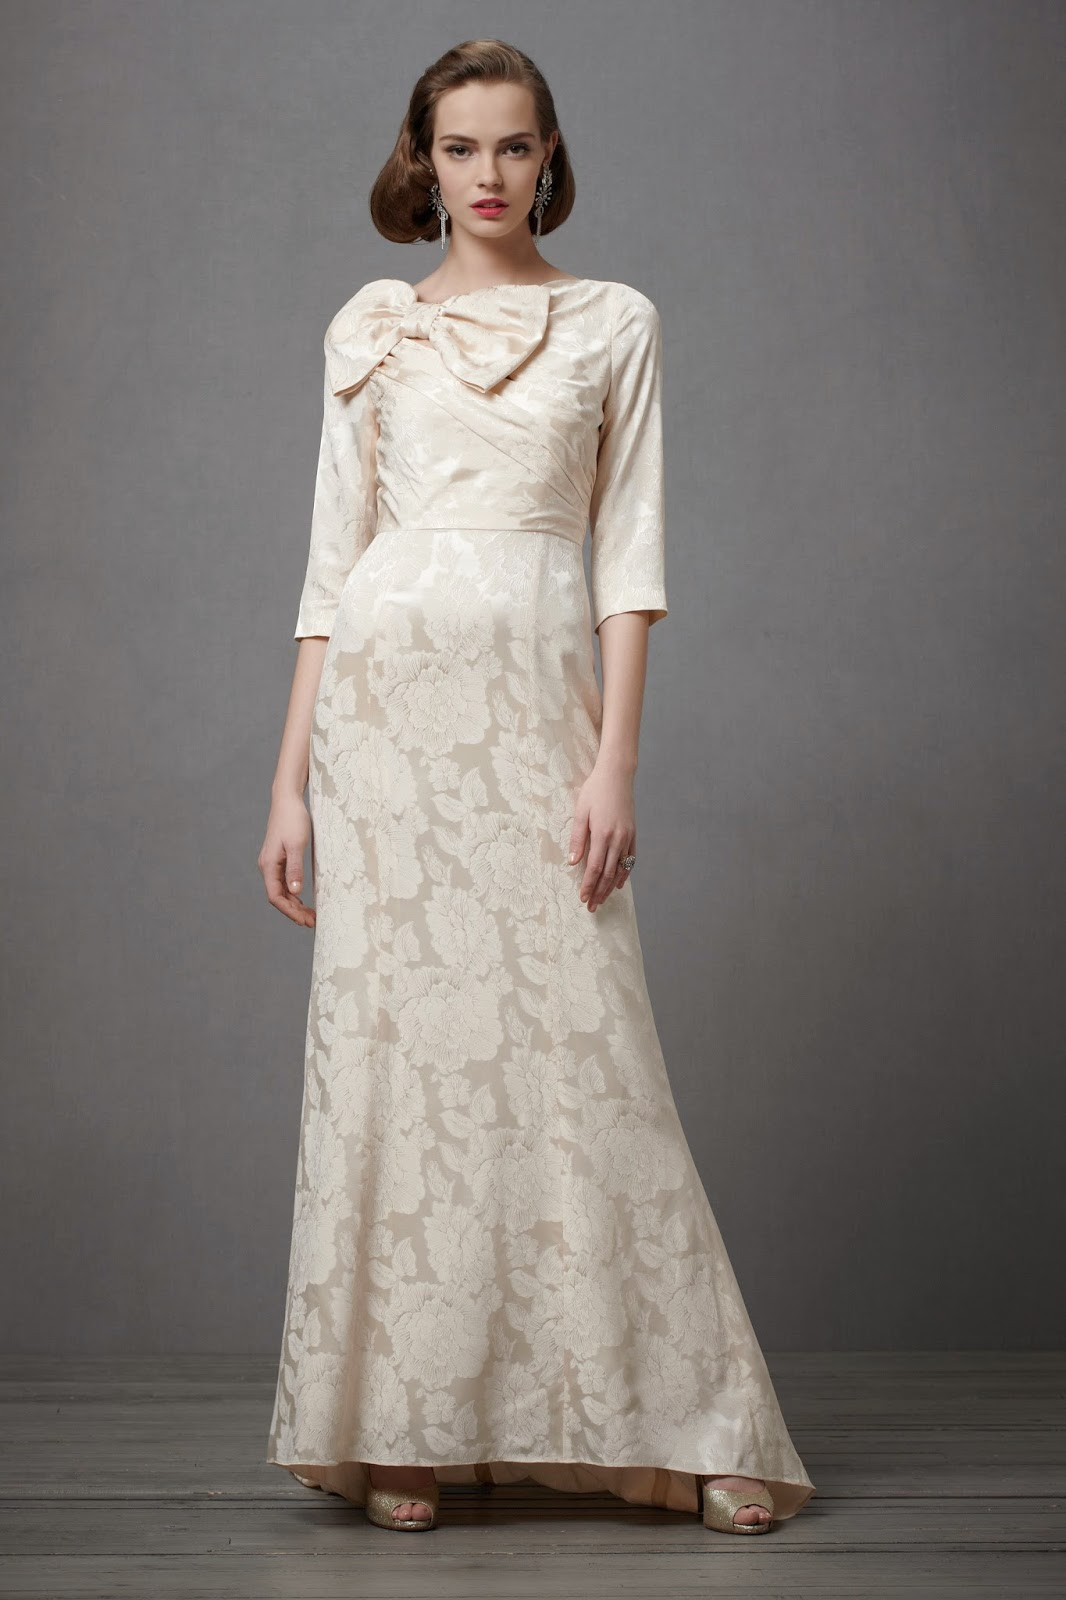 Dresses For Weddings Mothers Over 40 Simple Wedding Gowns Second Marriage